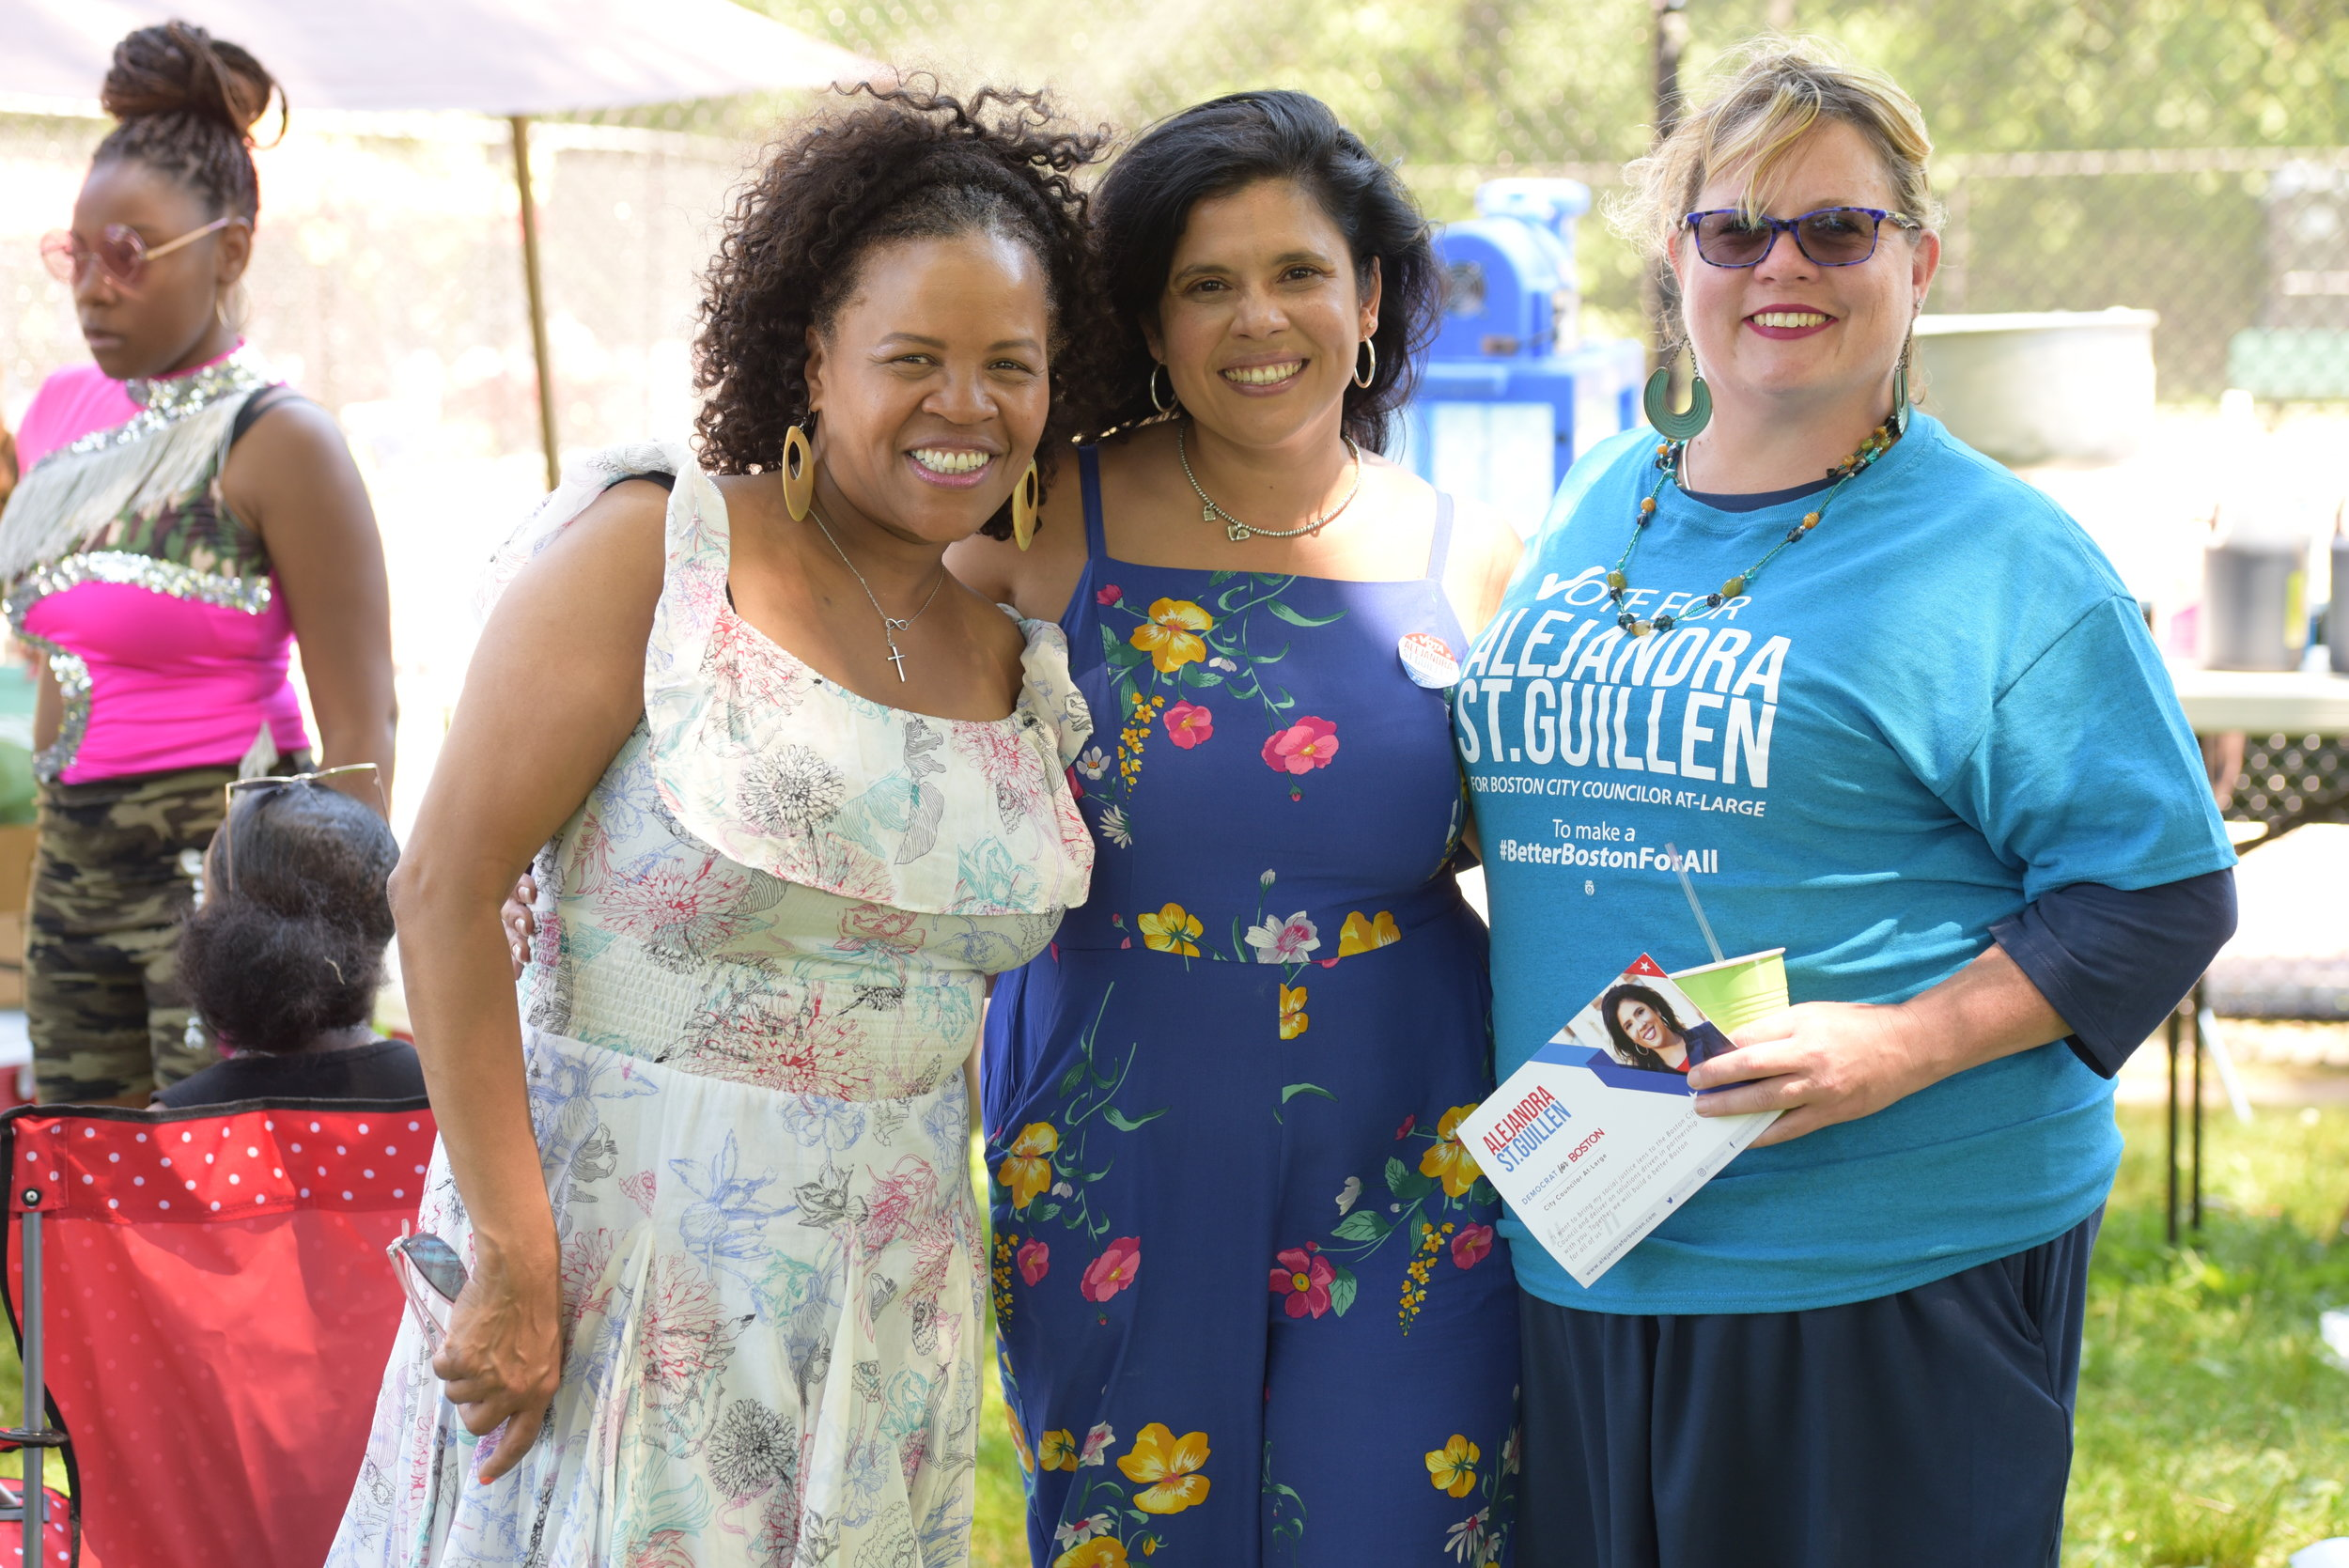 Boston City Councilor Kim Janey (District 7) and At Large Boston City Council Candidate Alejandra St. Guillen with local resident at Roxbury Annual Juneteenth Festival on June 15, 2019.